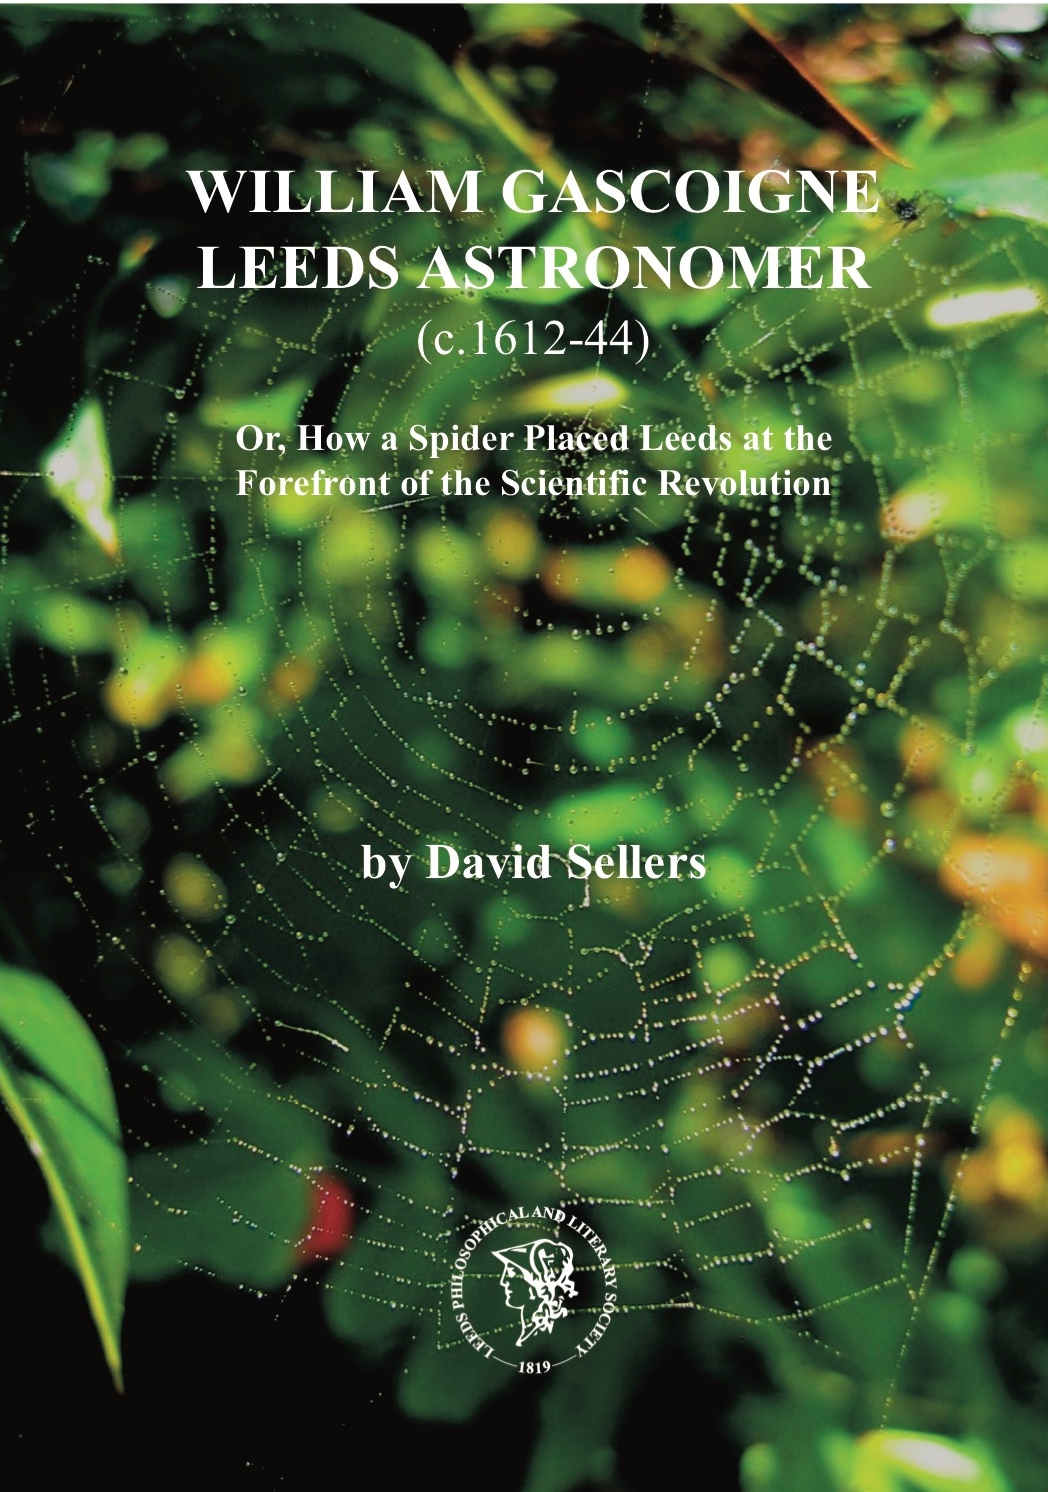 A picture of the book cover featuring a leafy background and a spiders web